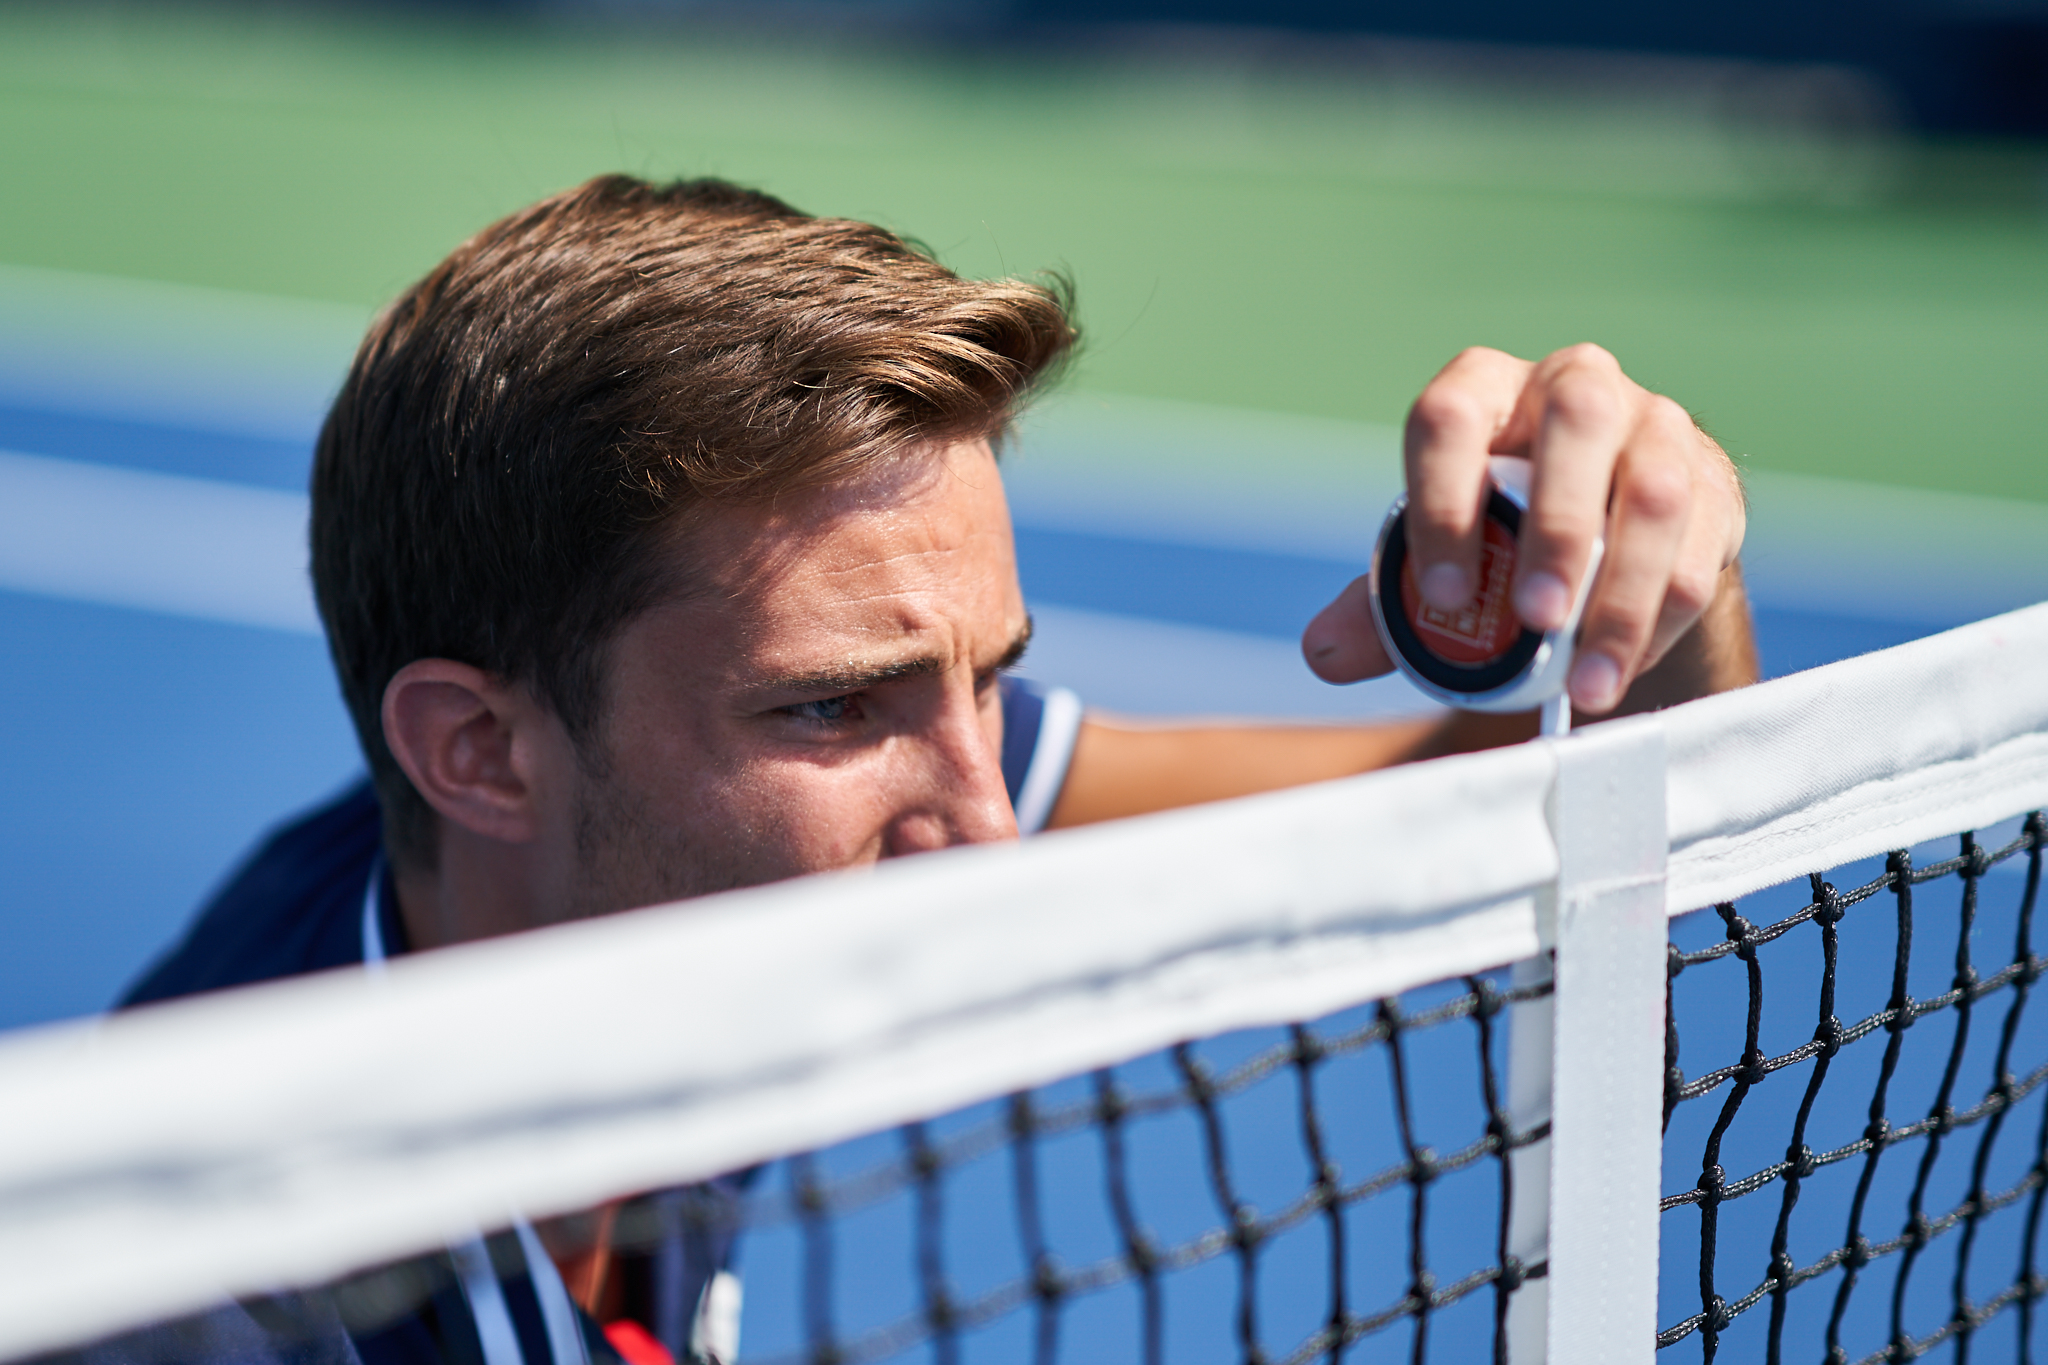 Chair umpire Tim Mevel measures the height of the net before second round play on Court 6.  Sony A9, Sony 85mm f1.4 GM